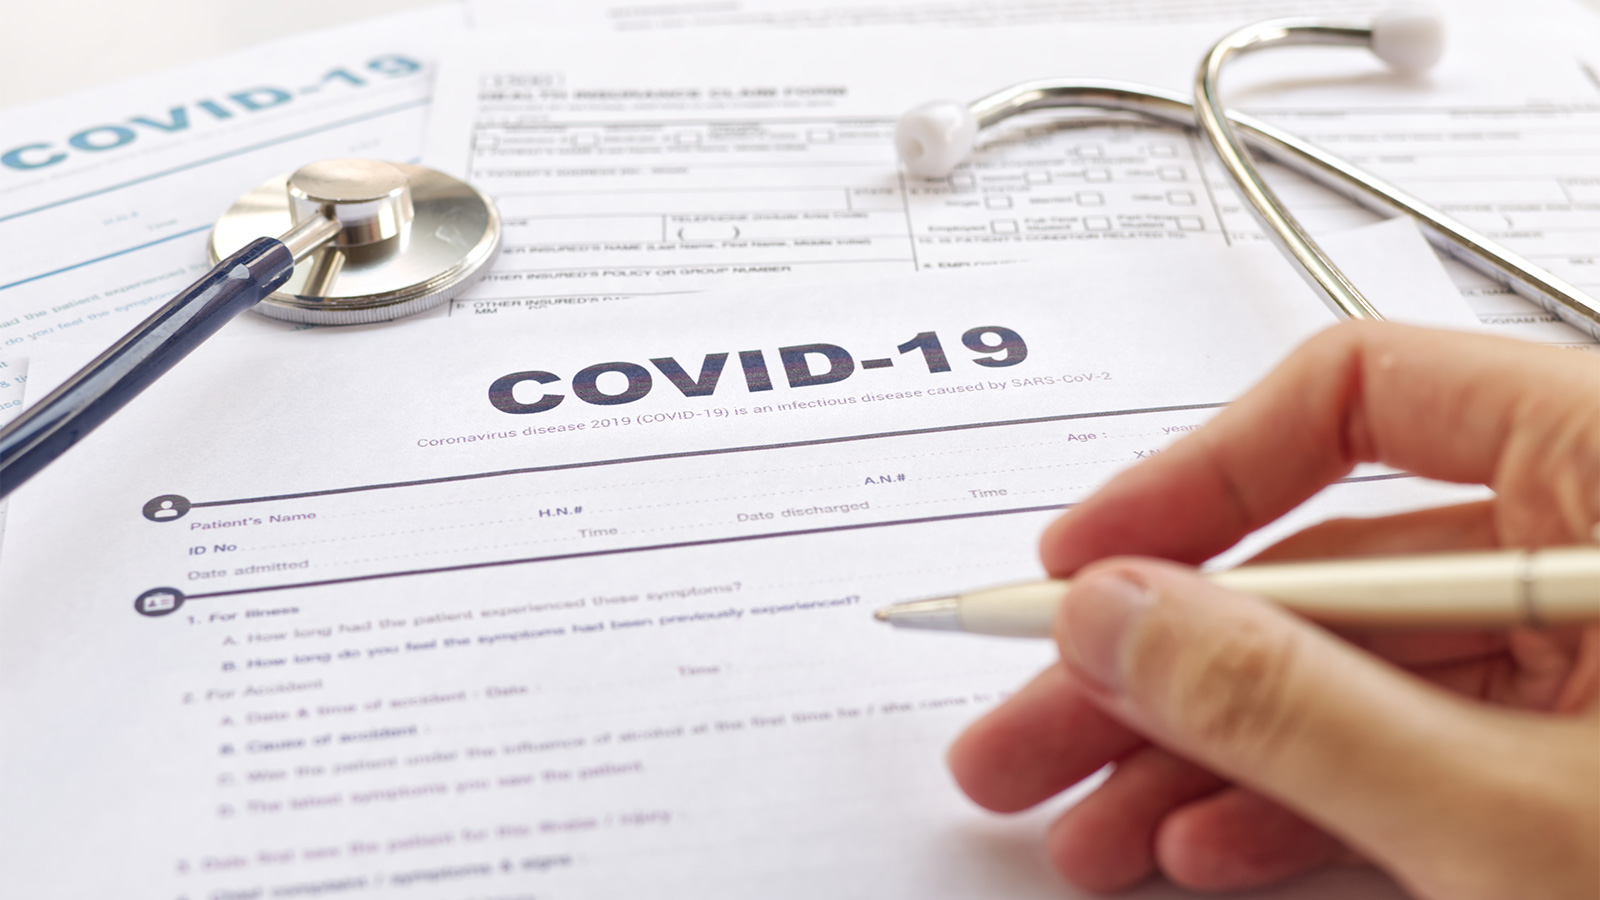 New CMS regulations bolster enforcement of COVID-19 reporting